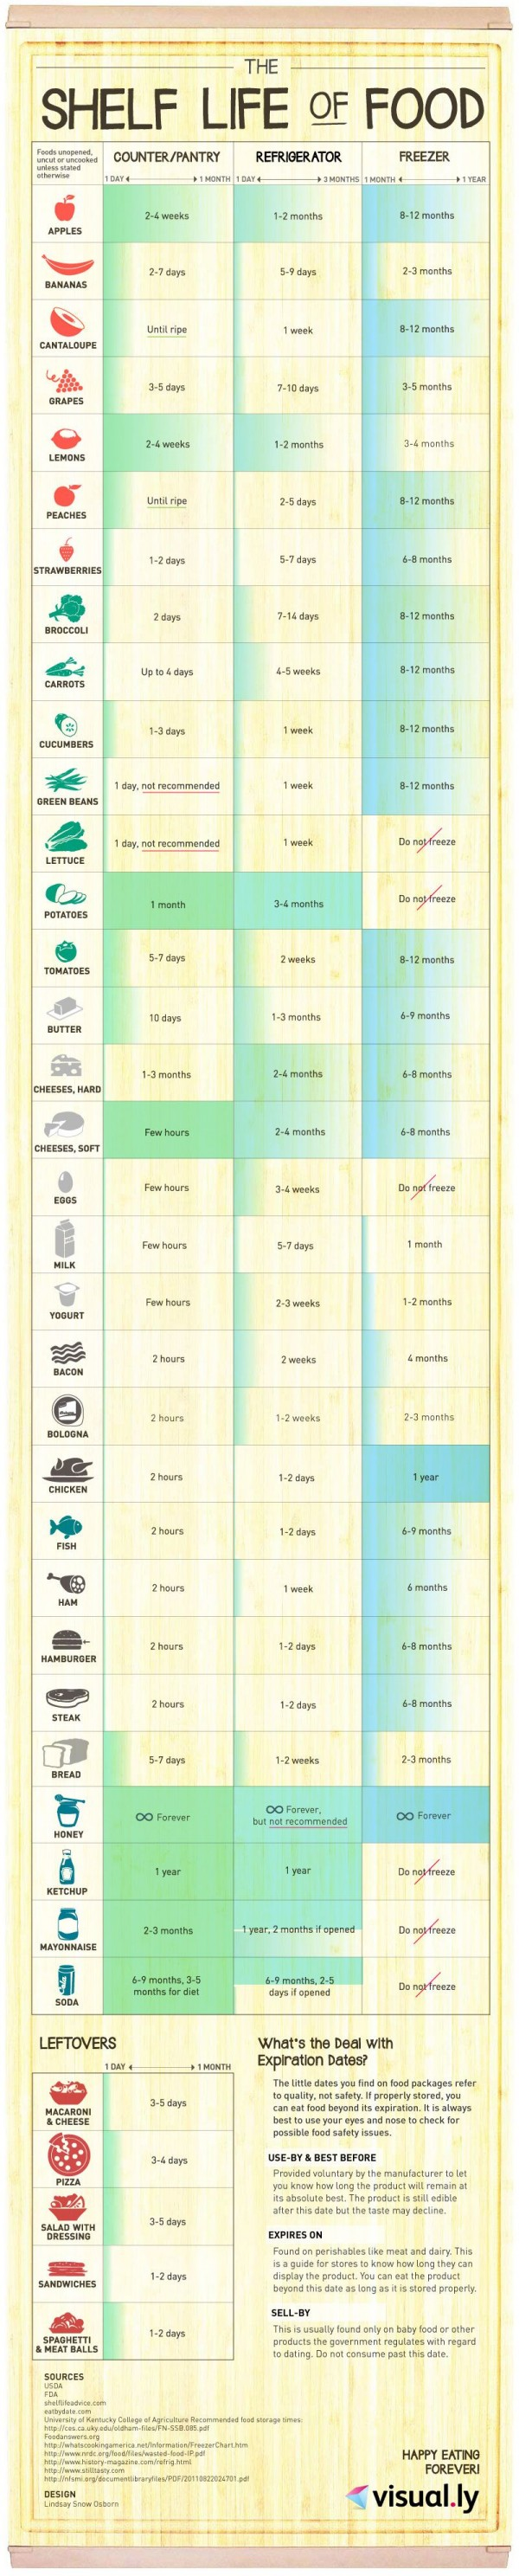 shelf-life-of-food-infographic-full-600x2976